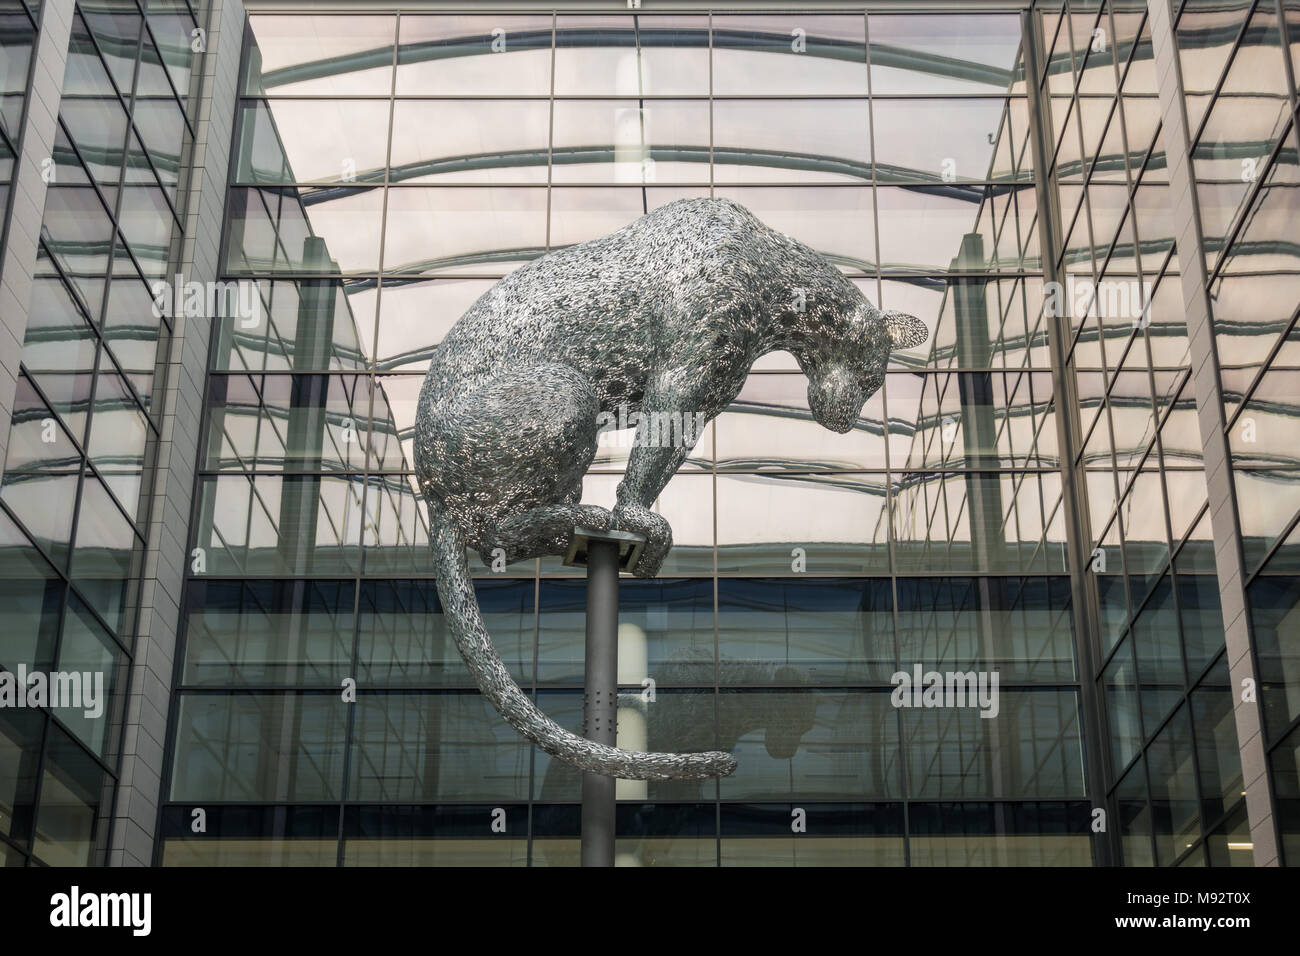 Poised - metal leopard sculpture at the new Marischal Square development, Aberdeen, Scotland, UK - Stock Image